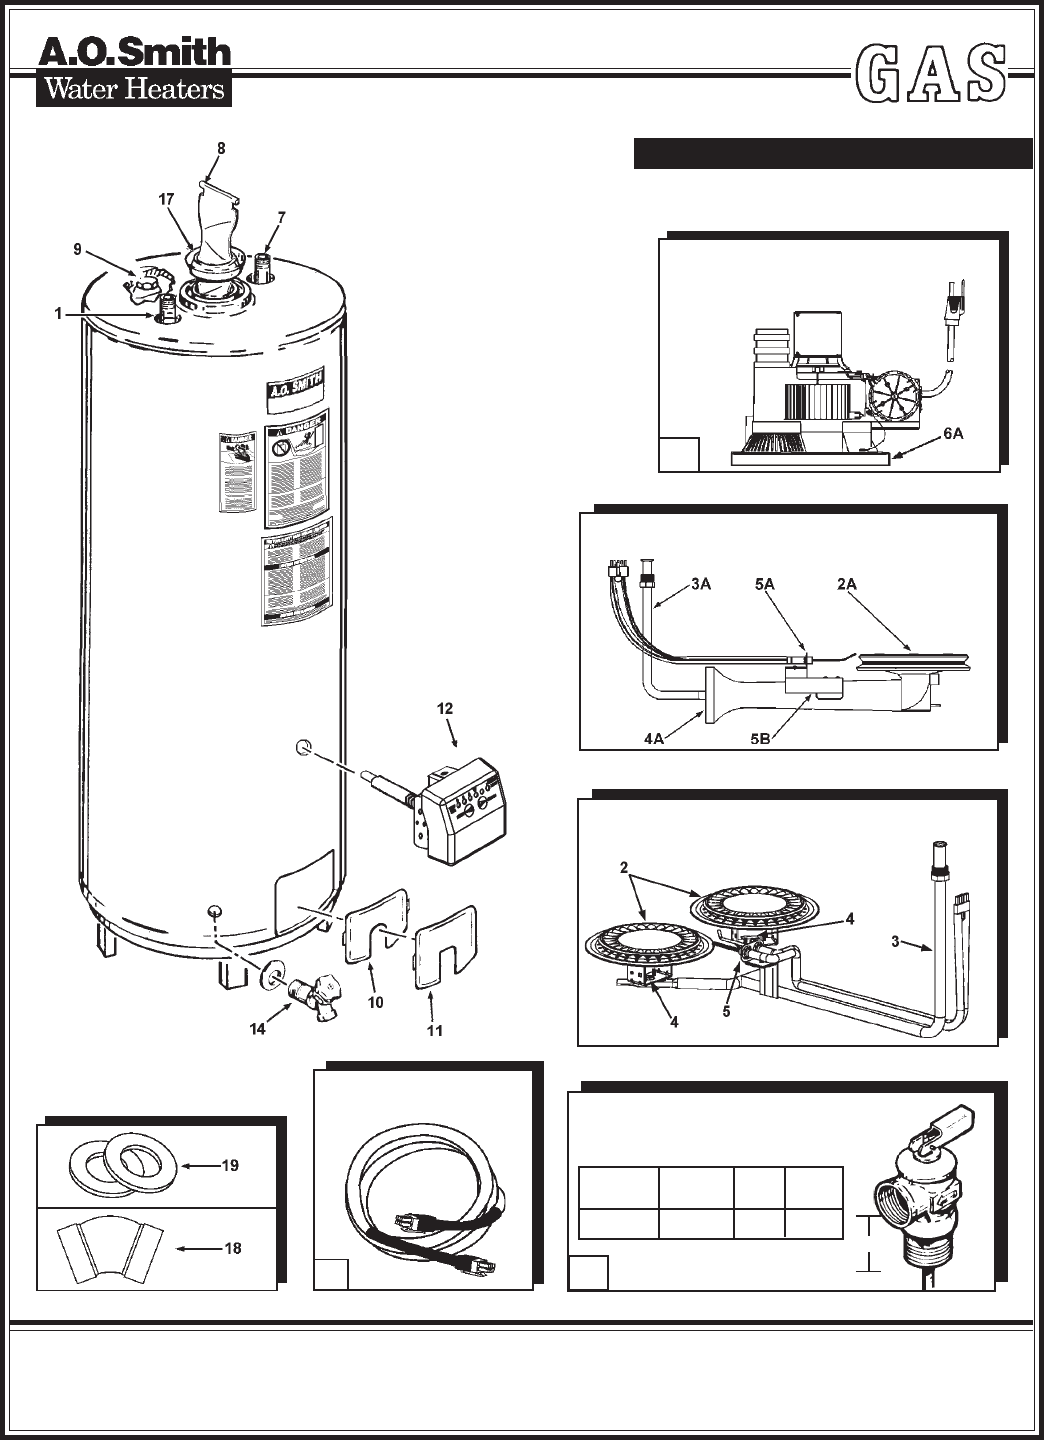 A O Smith Water Heater Btf 80 User Guide Manualsonline Com